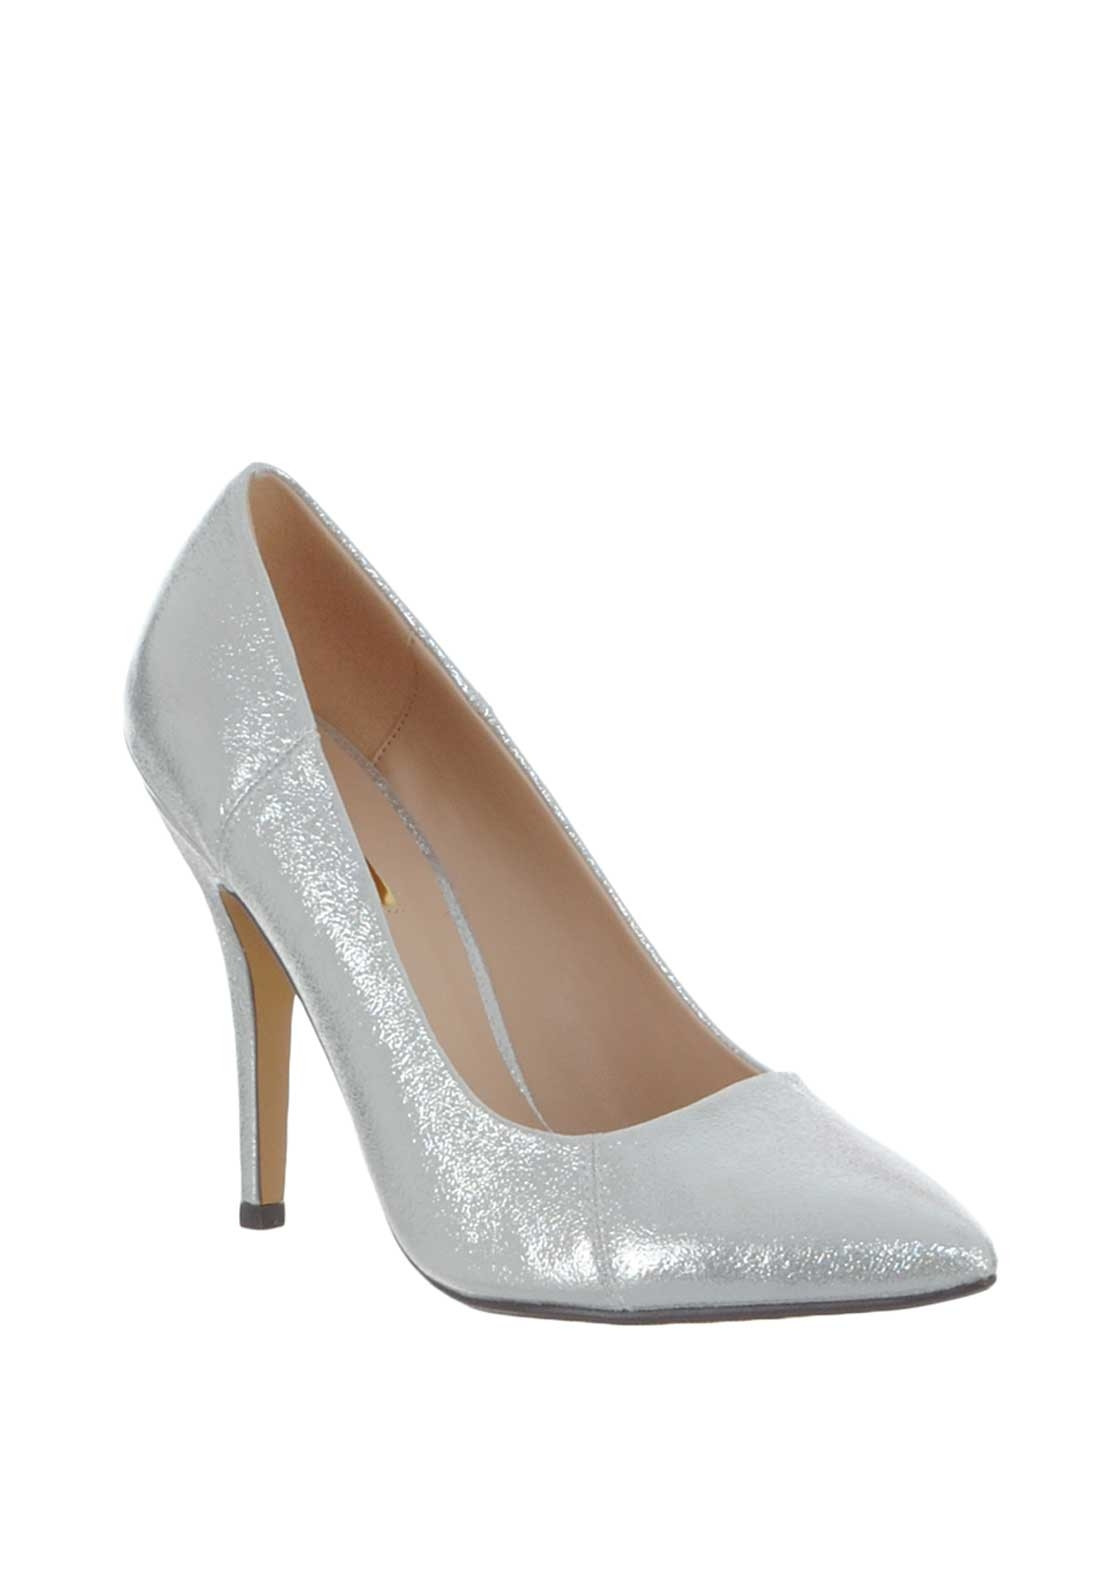 897078590ba3e Glamour Carrie Metallic Heeled Shoes, Silver | McElhinneys